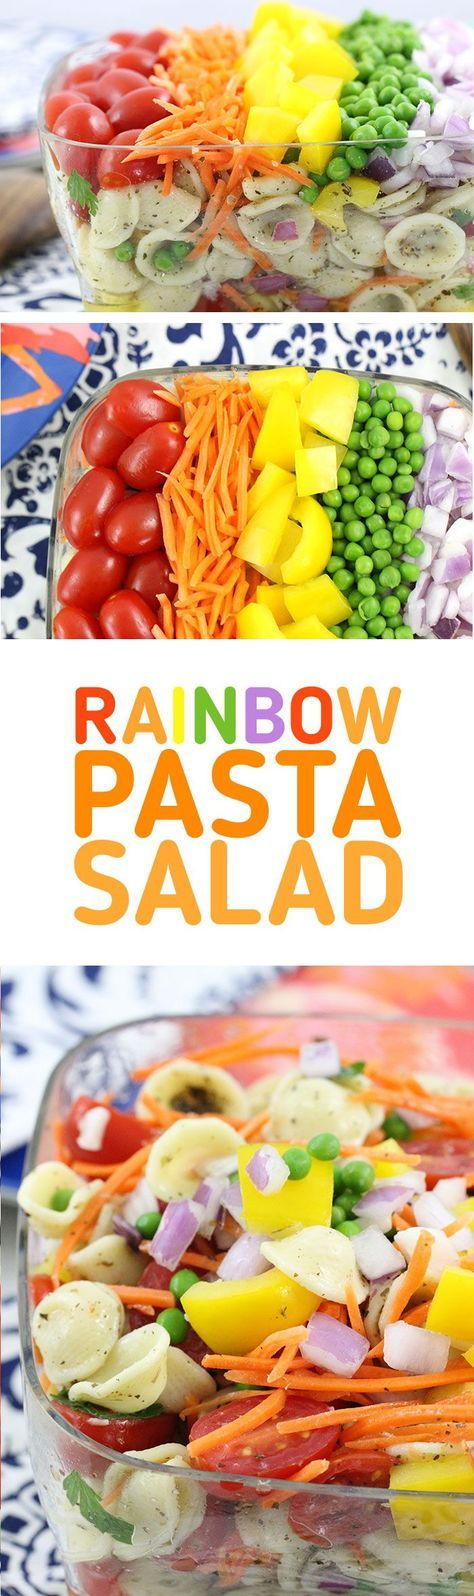 Rainbow Pasta Salad that's SO easy to make. Crowd Pleaser with colorful fresh veggies. Make extra pretty and delish with HemisFares Orecchiette pasta. #ad